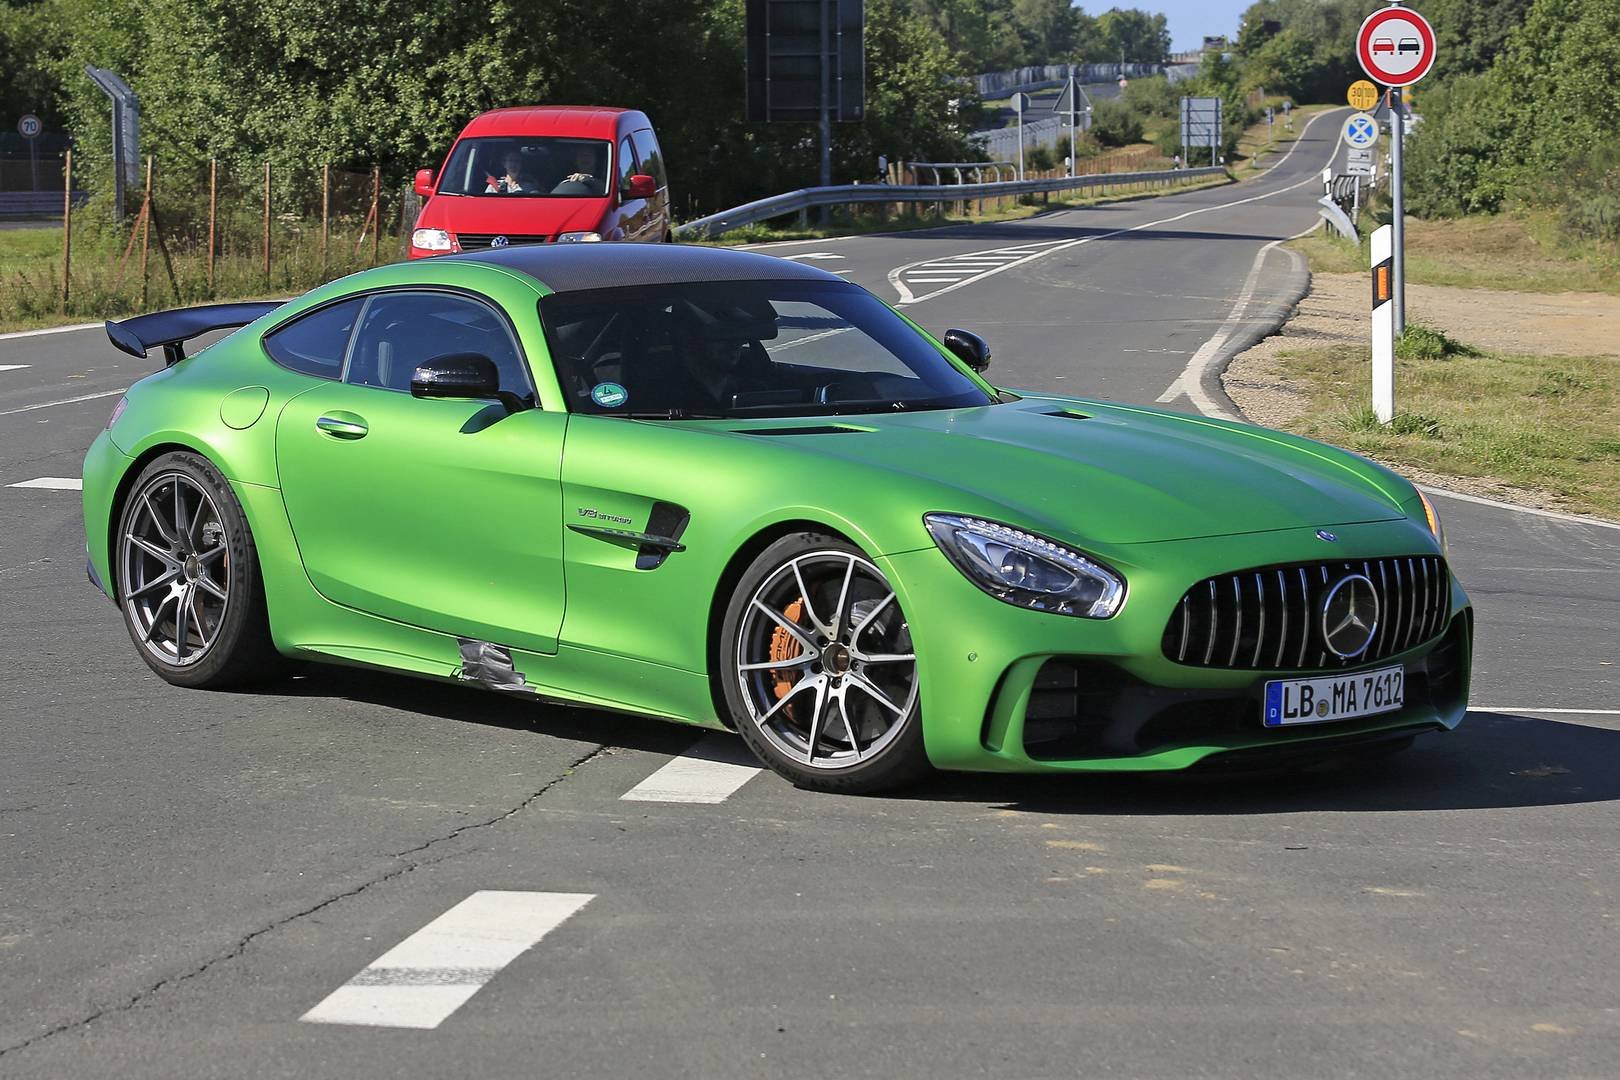 2018 mercedes amg gt4 road car first spy shots w video gtspirit. Black Bedroom Furniture Sets. Home Design Ideas